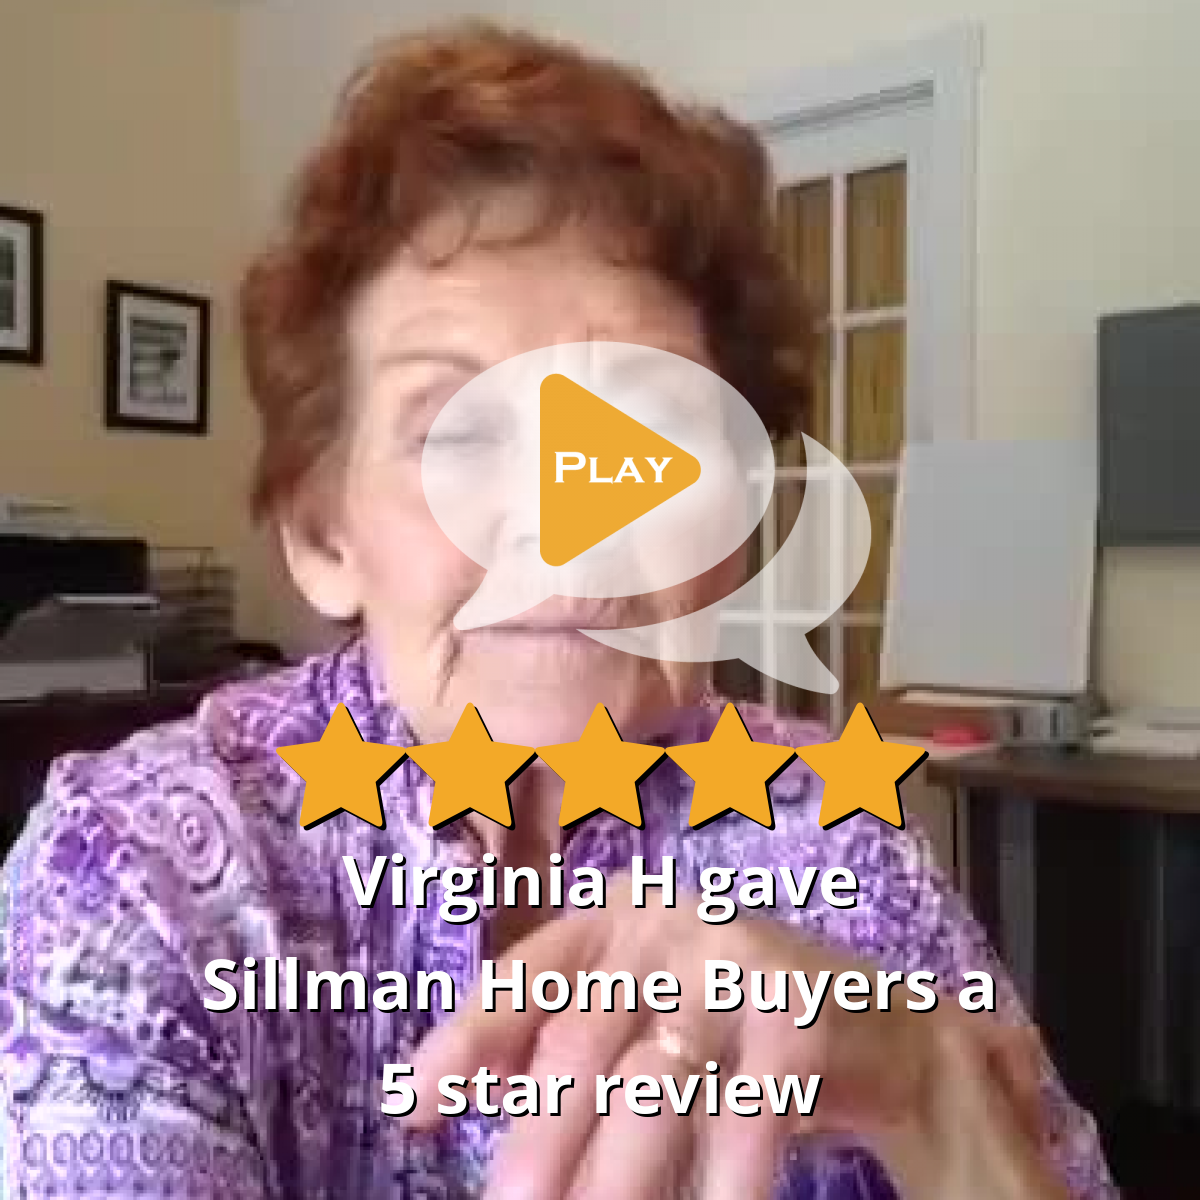 Virginia H gave Sillman Home Buyers a 5 star review